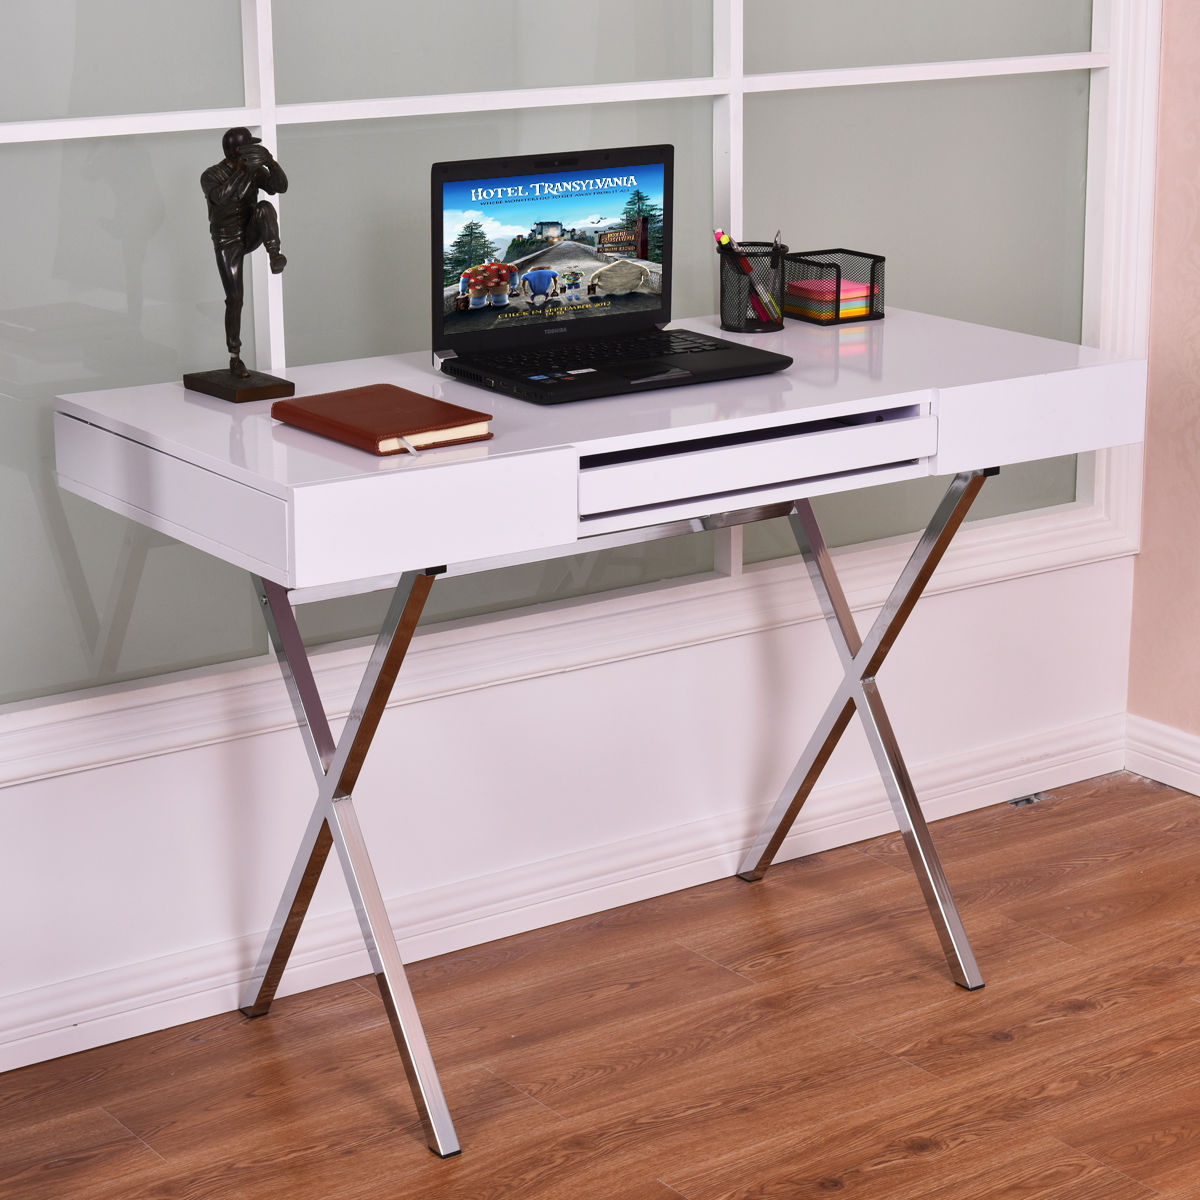 Giantex Computer Desk PC Laptop Table Modern Home Workstation Metal Frame Wood Top Office Desk with Keyboard Tray HW54484 laptop replacement keyboard with silver frame